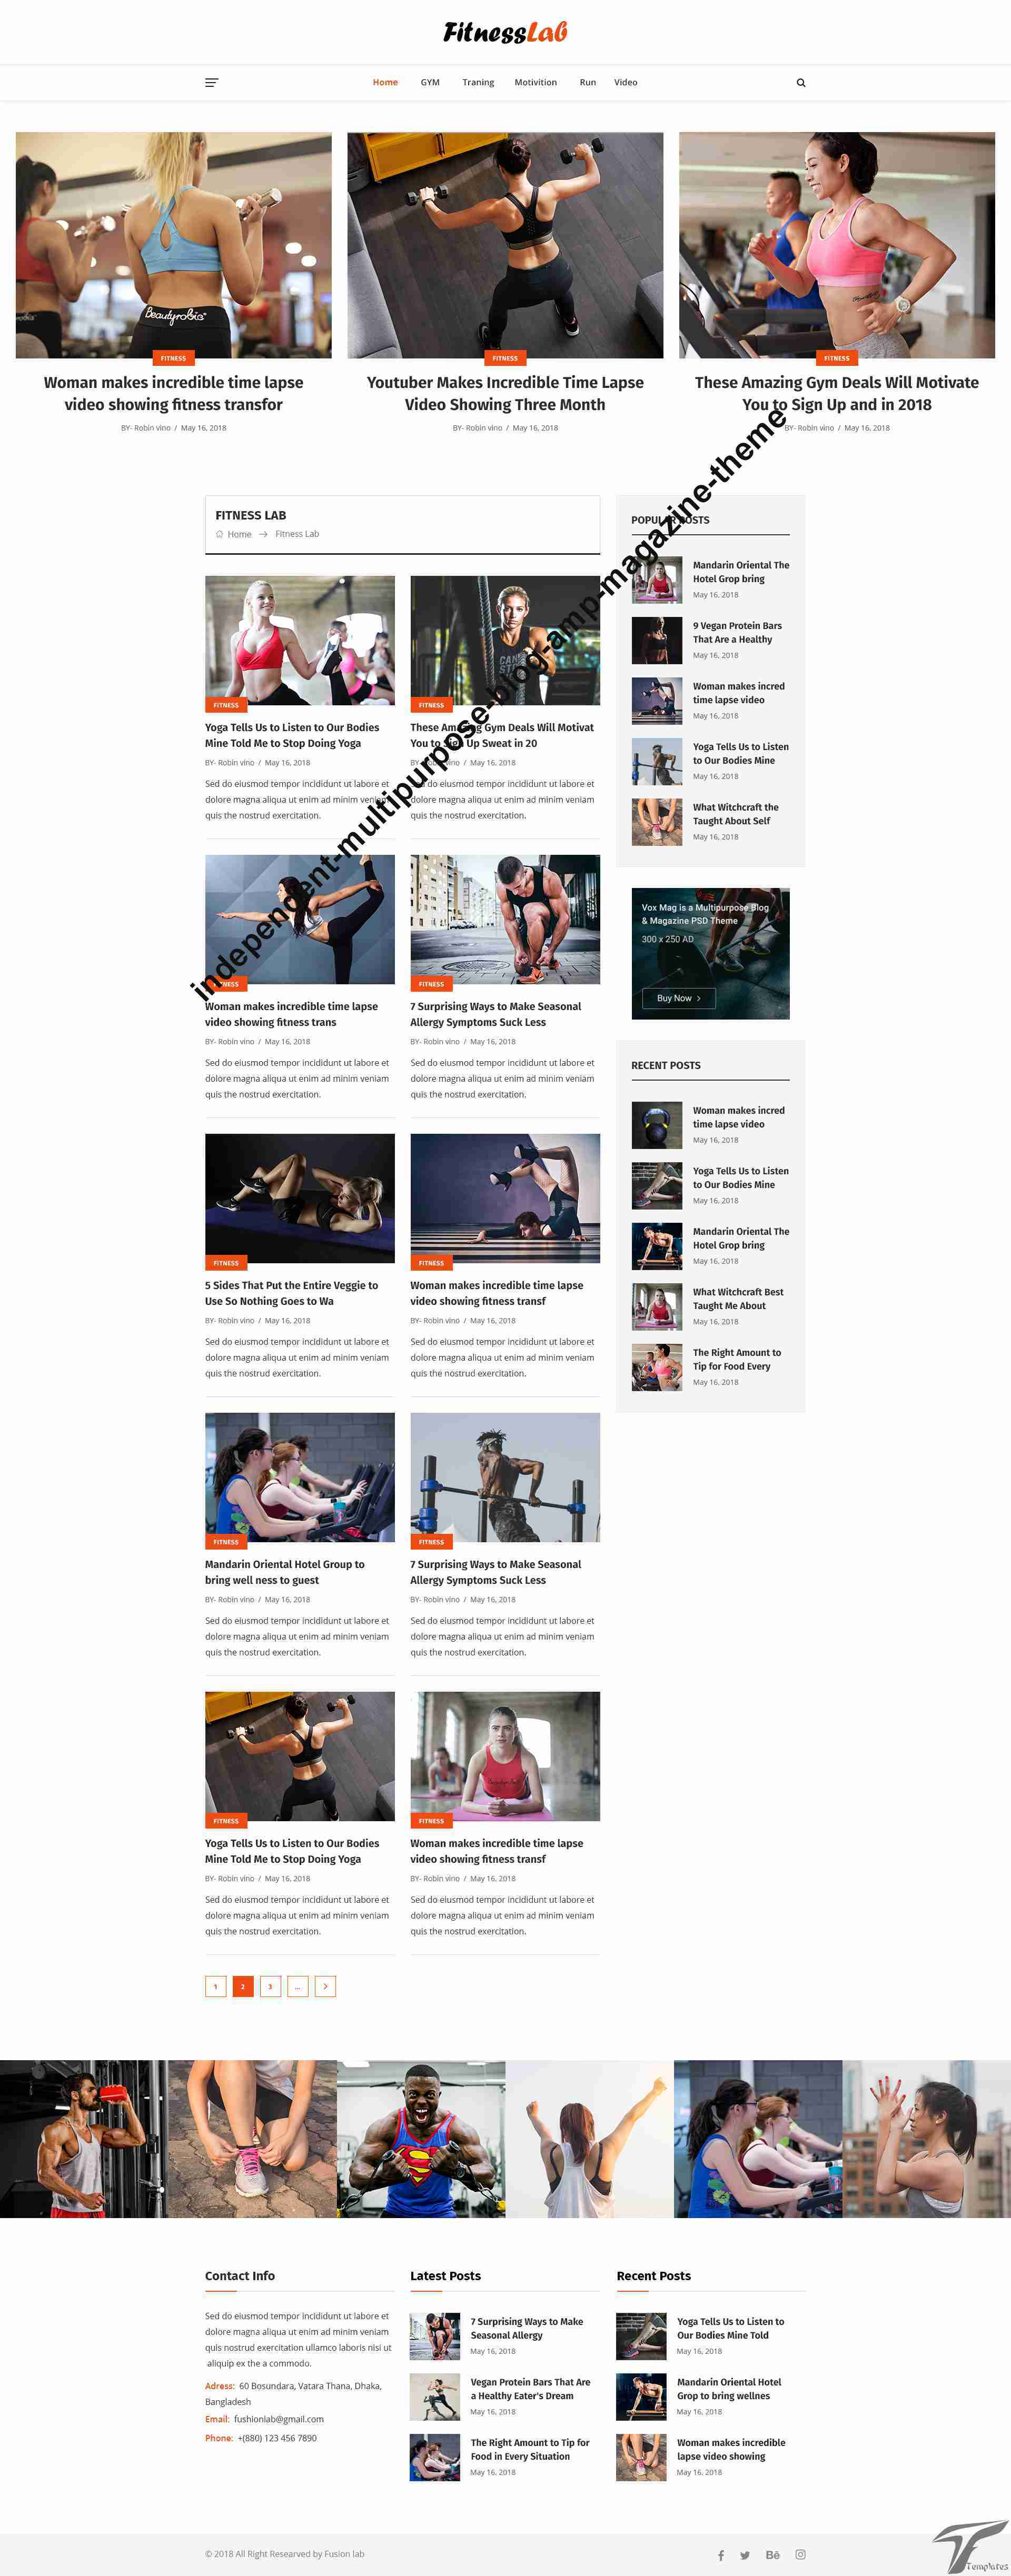 https://images.besthemes.com/images/h1_independent-multipurpose-blog-amp-magazine-theme52-_-249989416/Theme-s20s-Preview/51-Listing-s20s-Blog.jpg